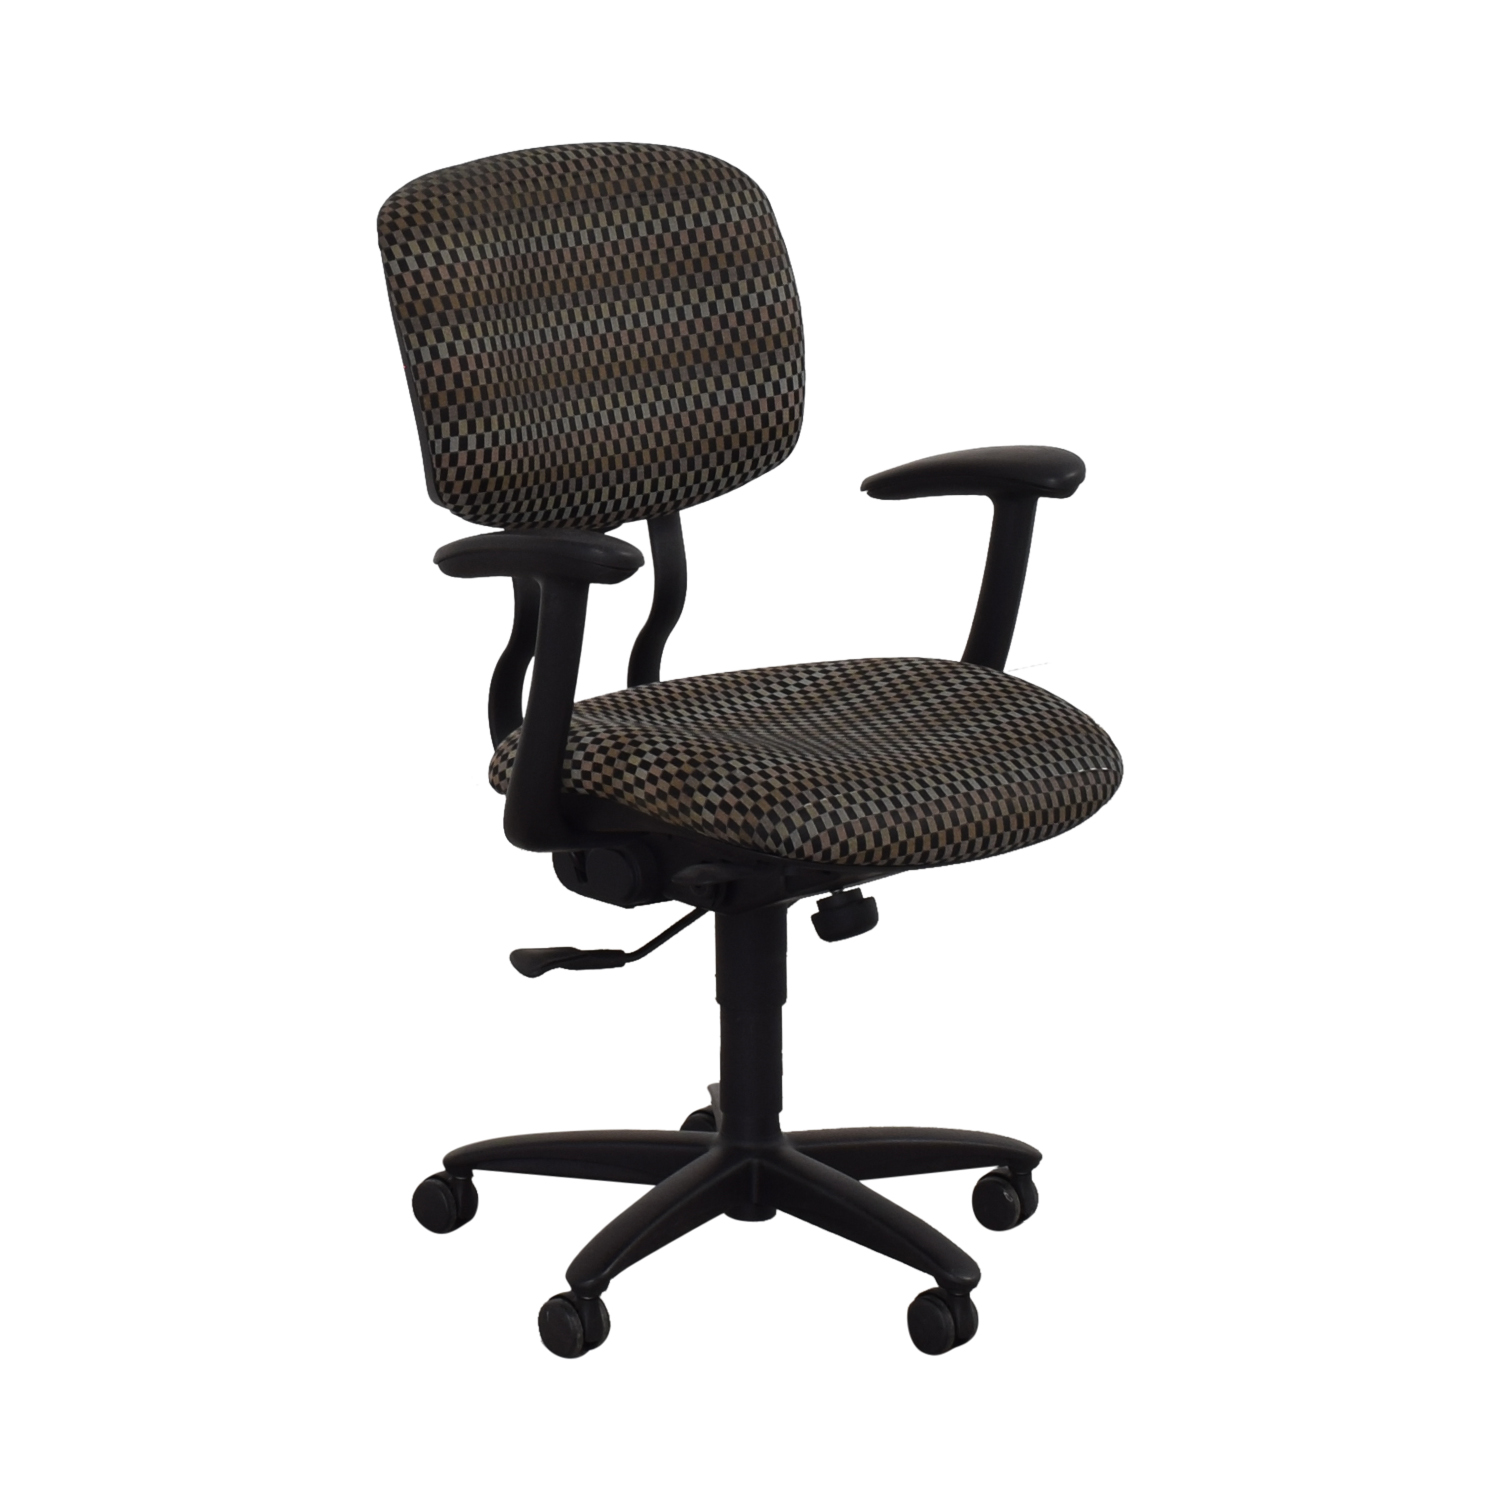 Haworth Improv Office Desk Chair / Chairs